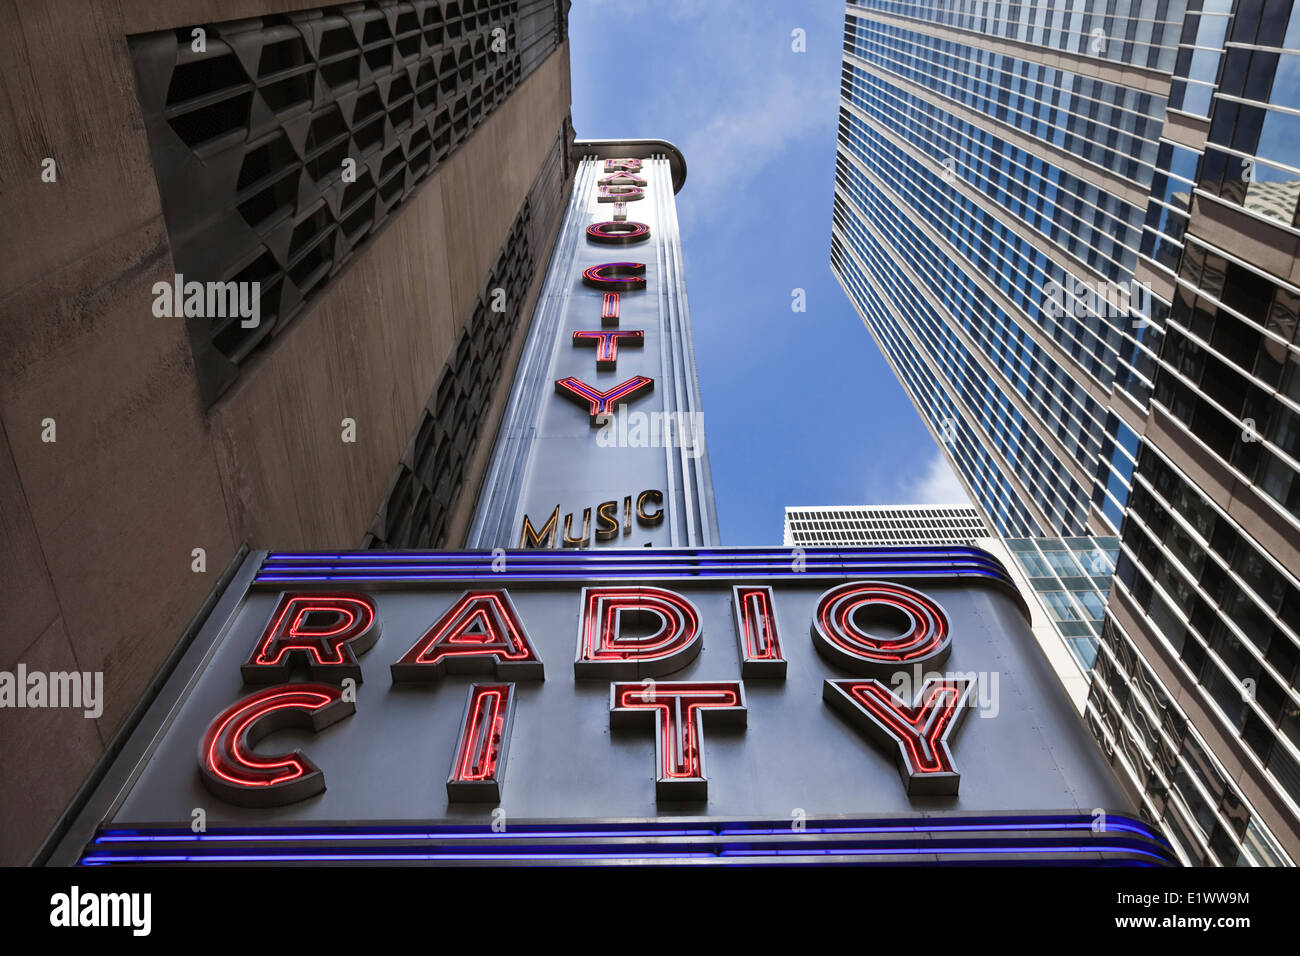 Low angle view of the marquee at Radio City Music Hall, New York City, New York, U.S.A. - Stock Image